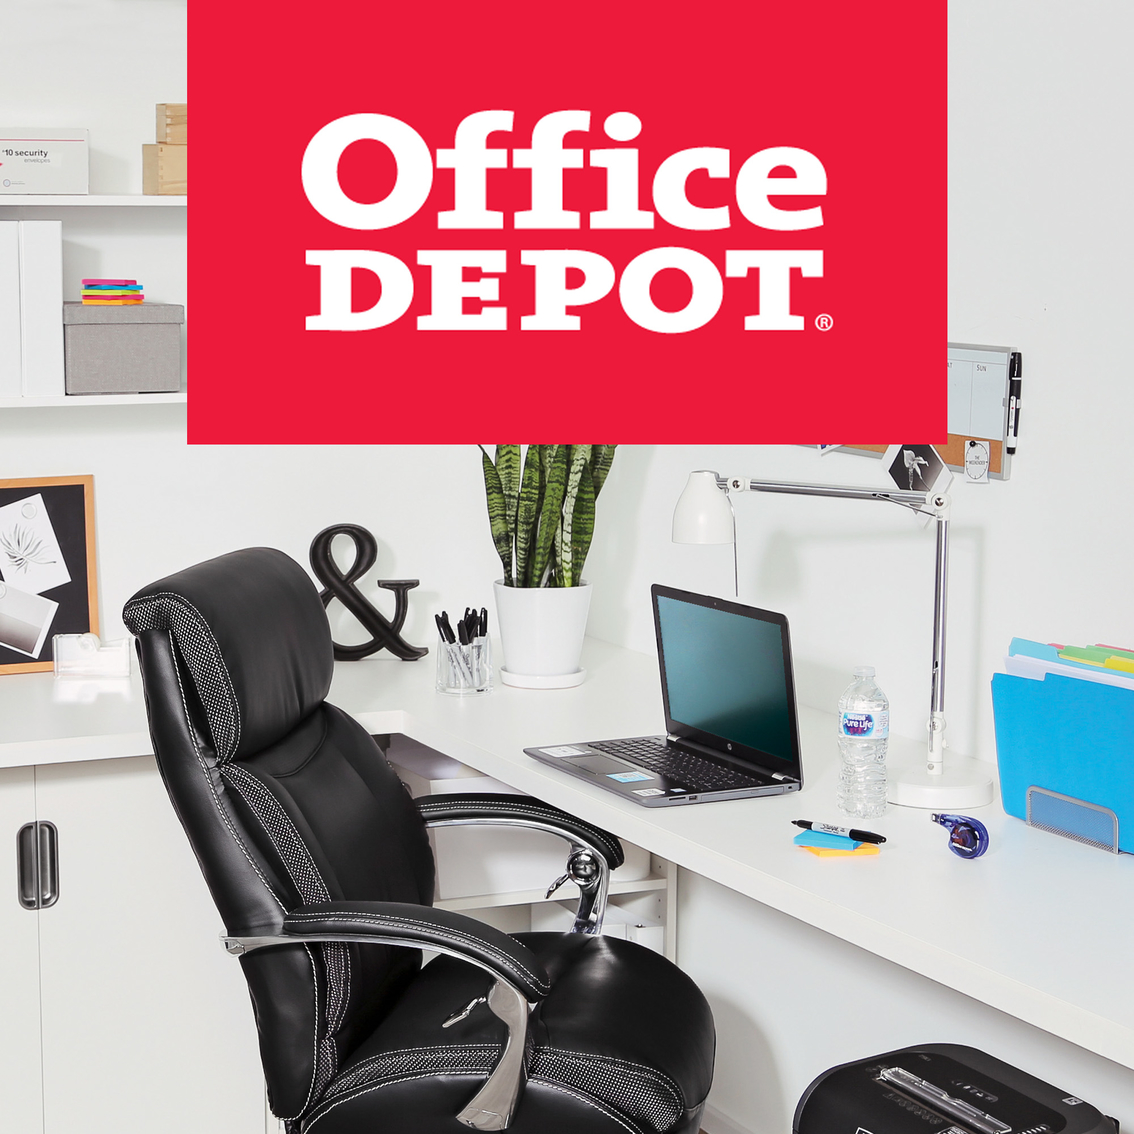 Office Depot Hard Drives Amp Backup Electronics Shop